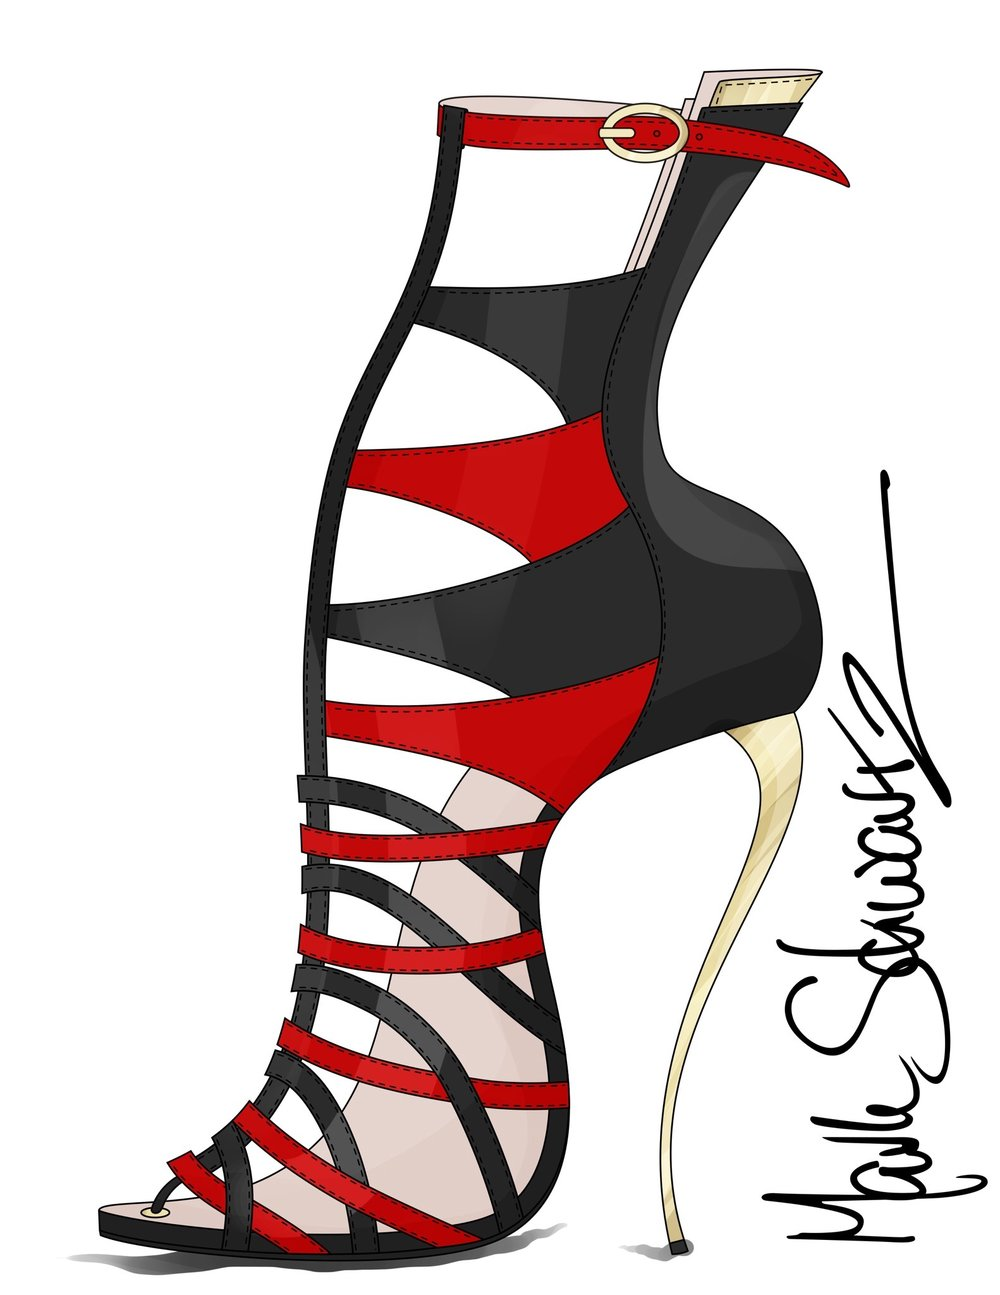 I am offering online classes in footwear design for beginners and accomplished designers as well , classes start at $500.00 for one month.  Contact / schwartzmark@mac.com  www.highheeledart.com